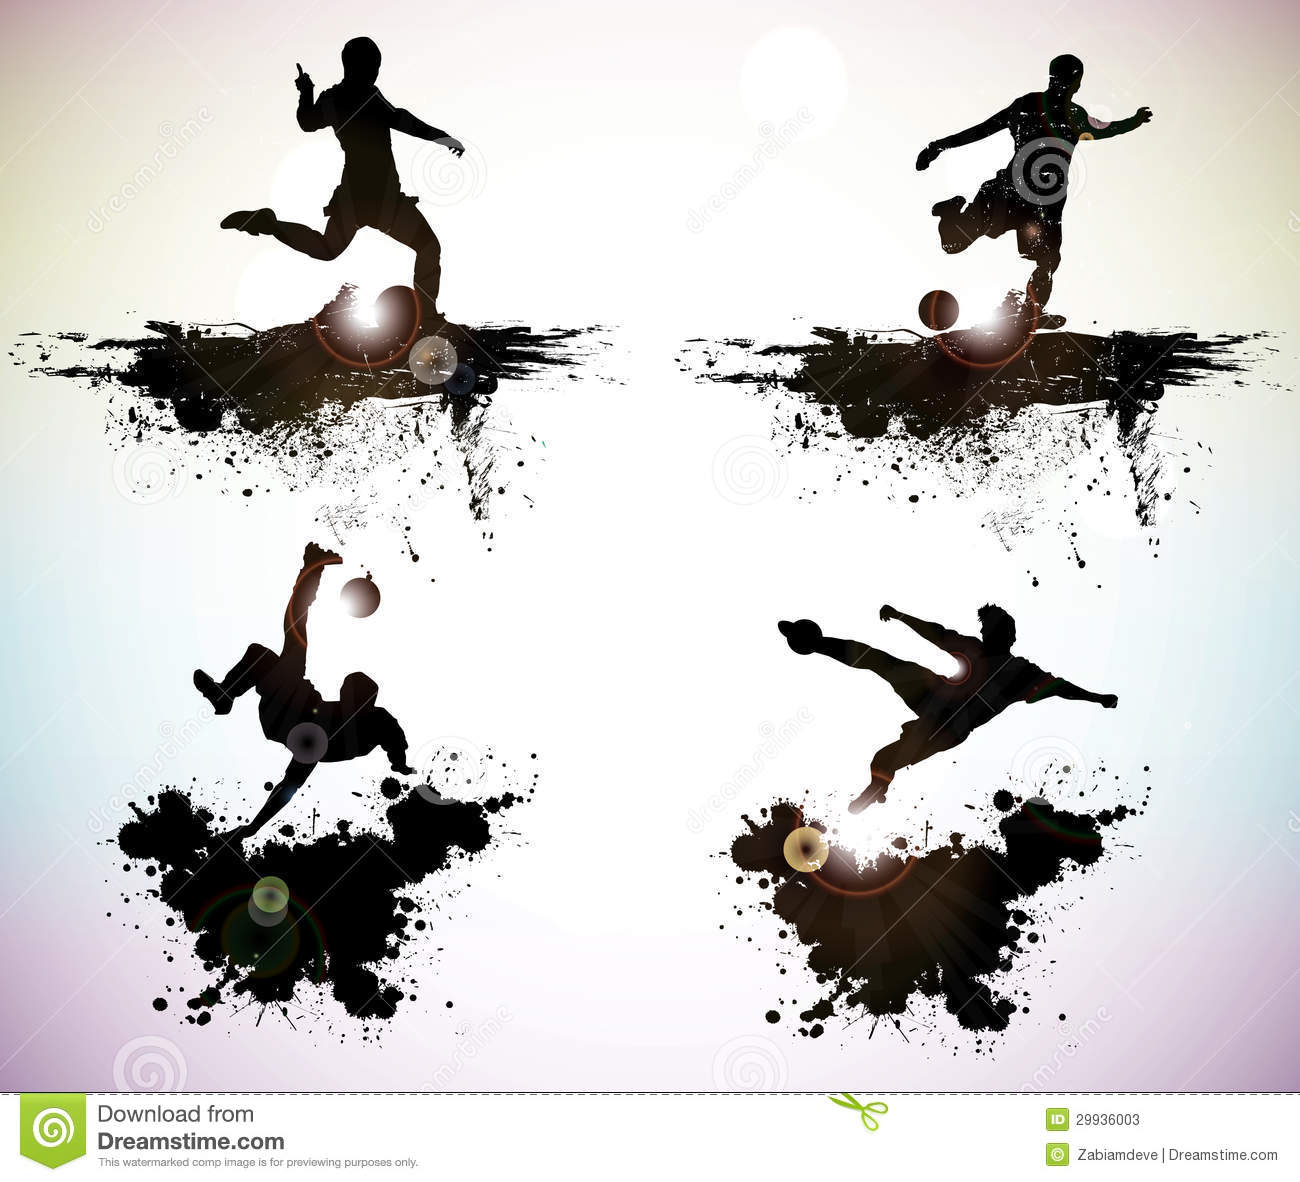 11 Grunge Vector Sports Images